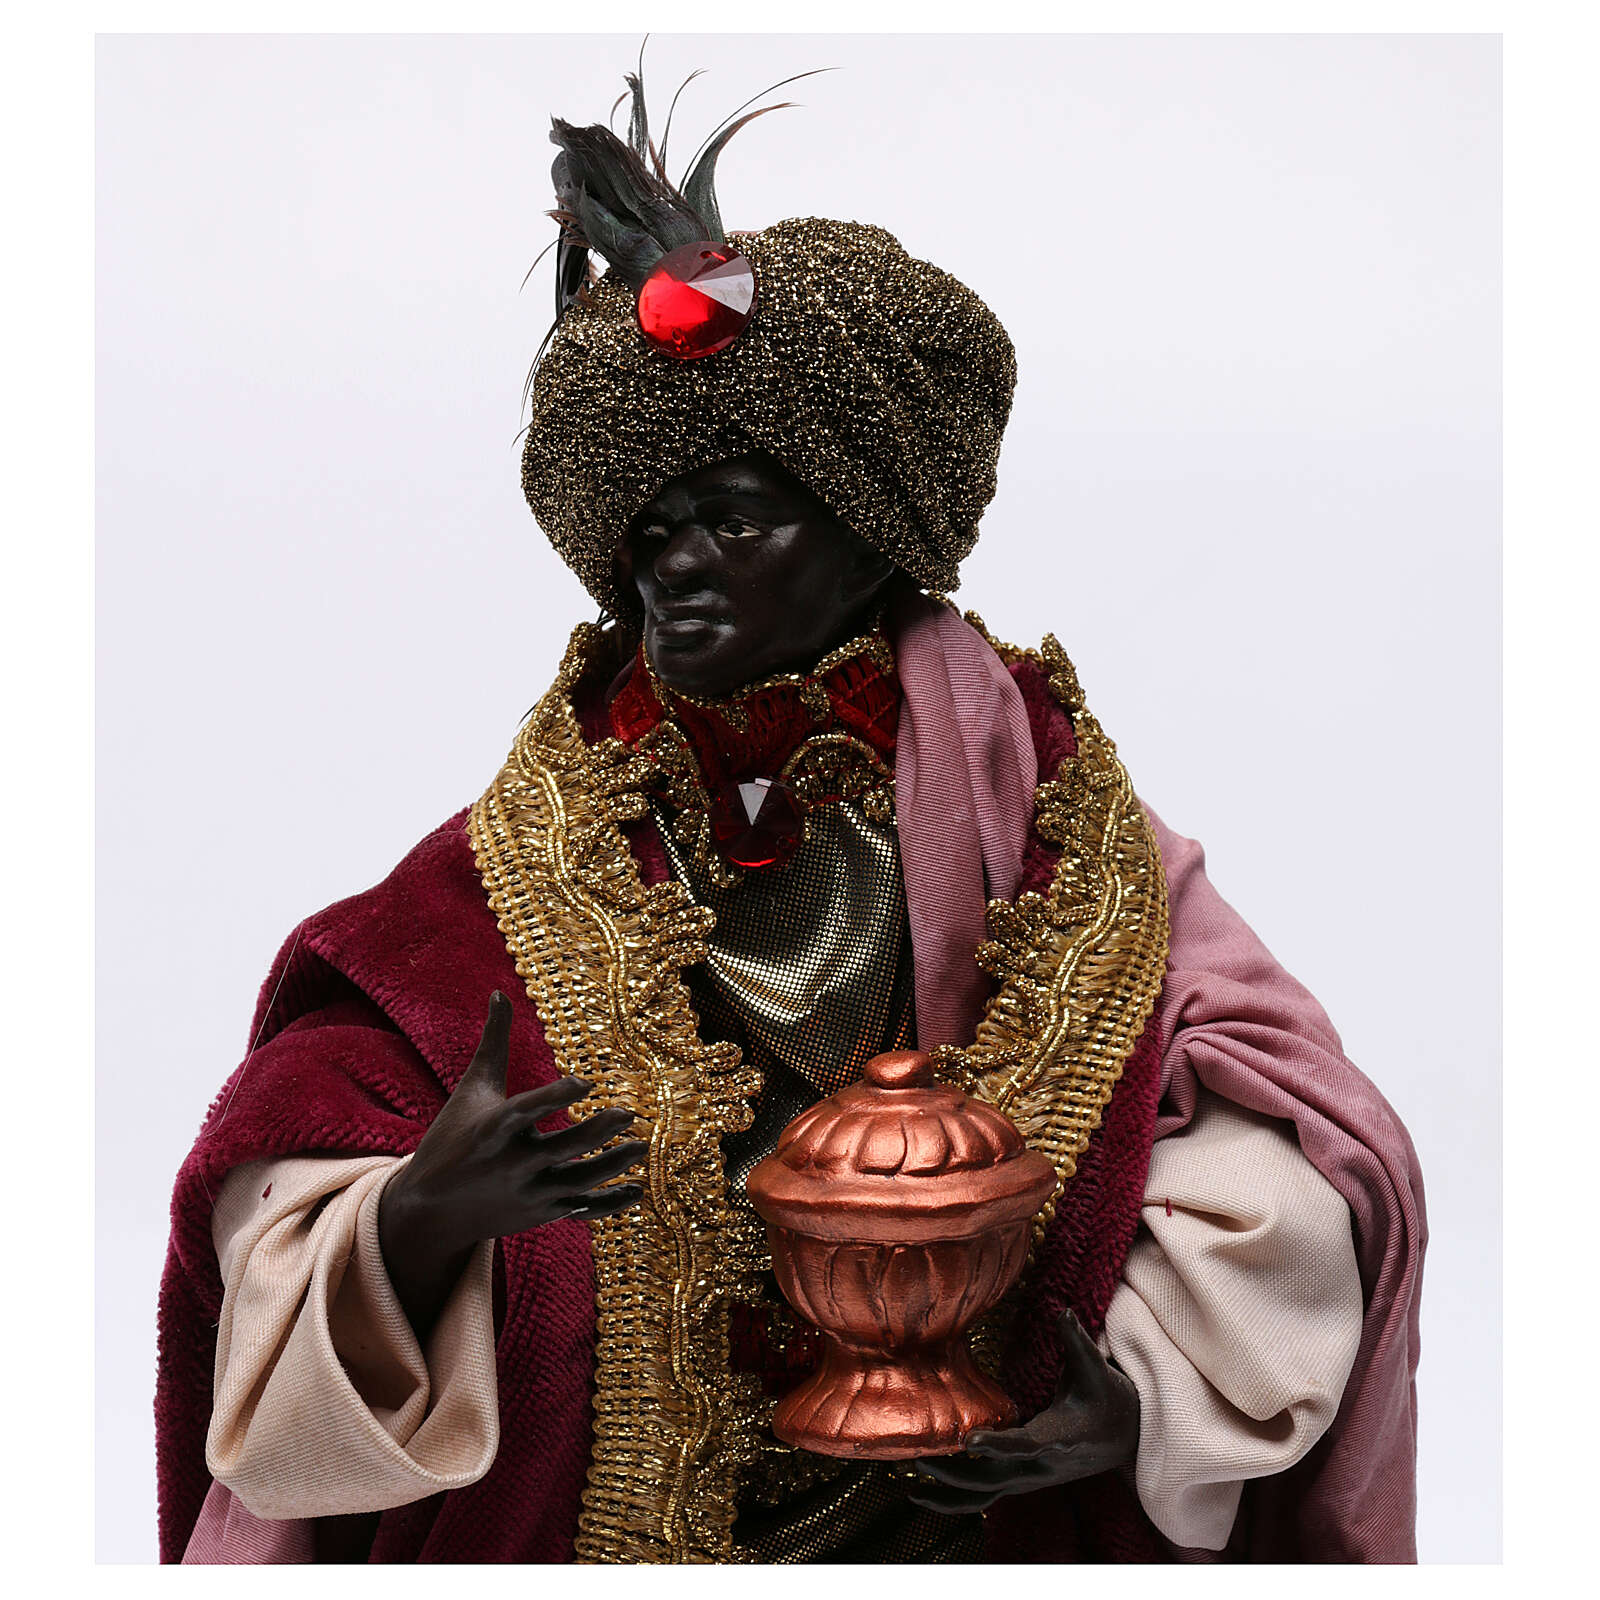 Dark skinned king (Magi) for Neapolitan nativity scene 30 cm 4